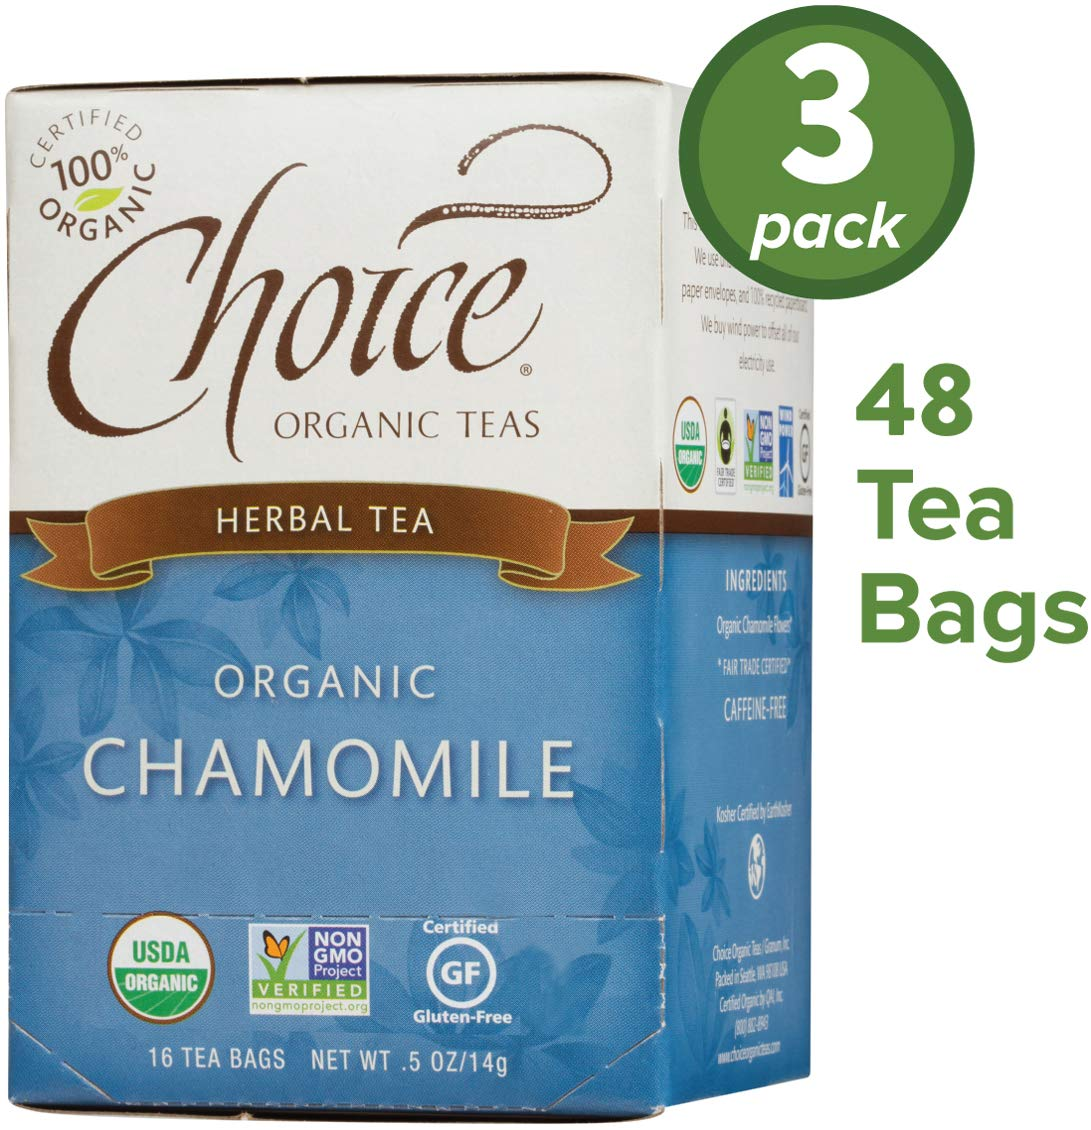 Choice Organic Teas Herbal Tea, 3 Boxes of 16 (48 Tea Bags), Chamomile, Caffeine Free by Choice Organic Teas